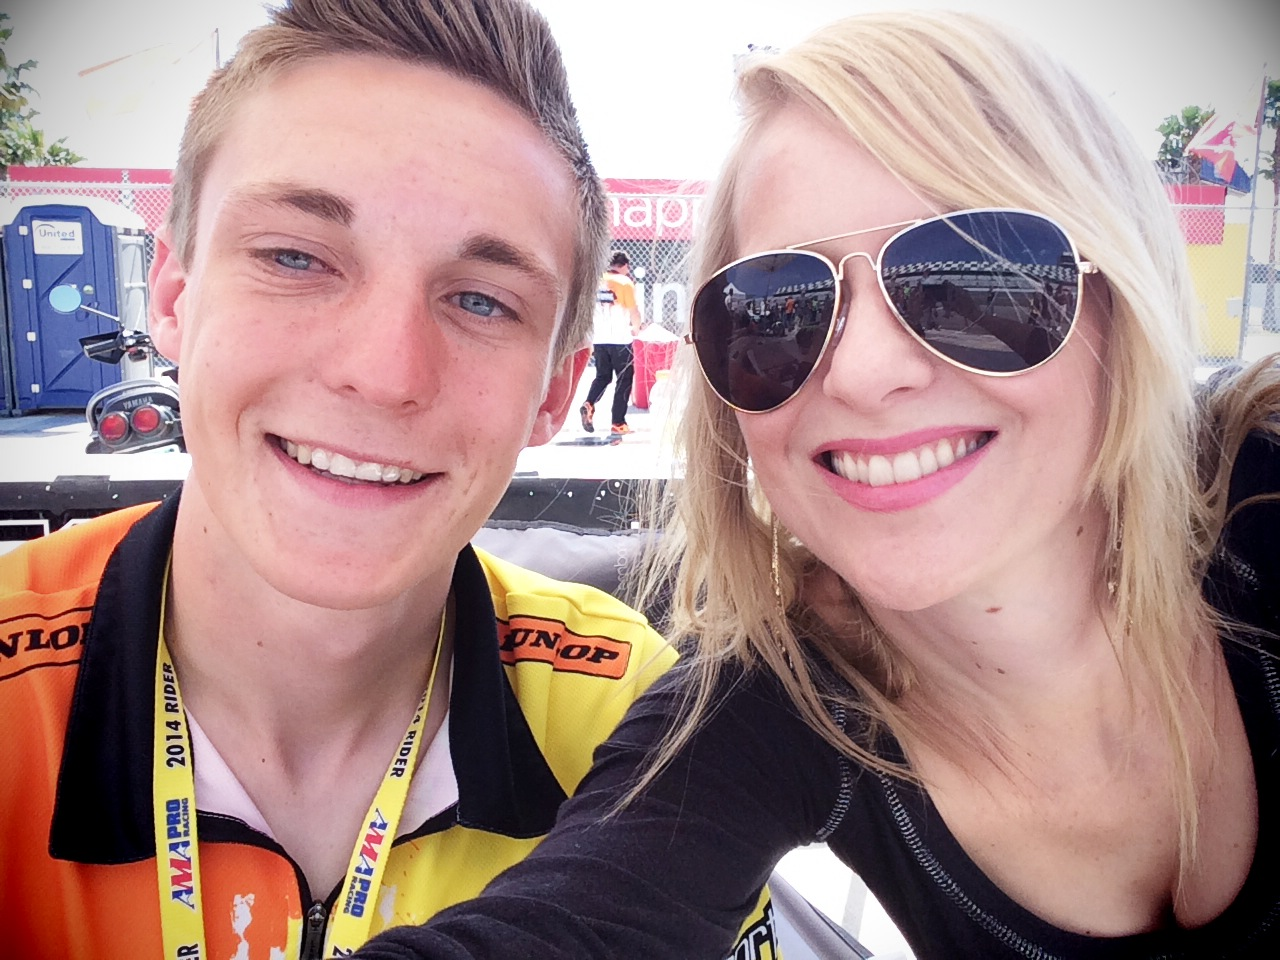 Meeting Kaleb De Keyrel at Daytona 200 in 2014